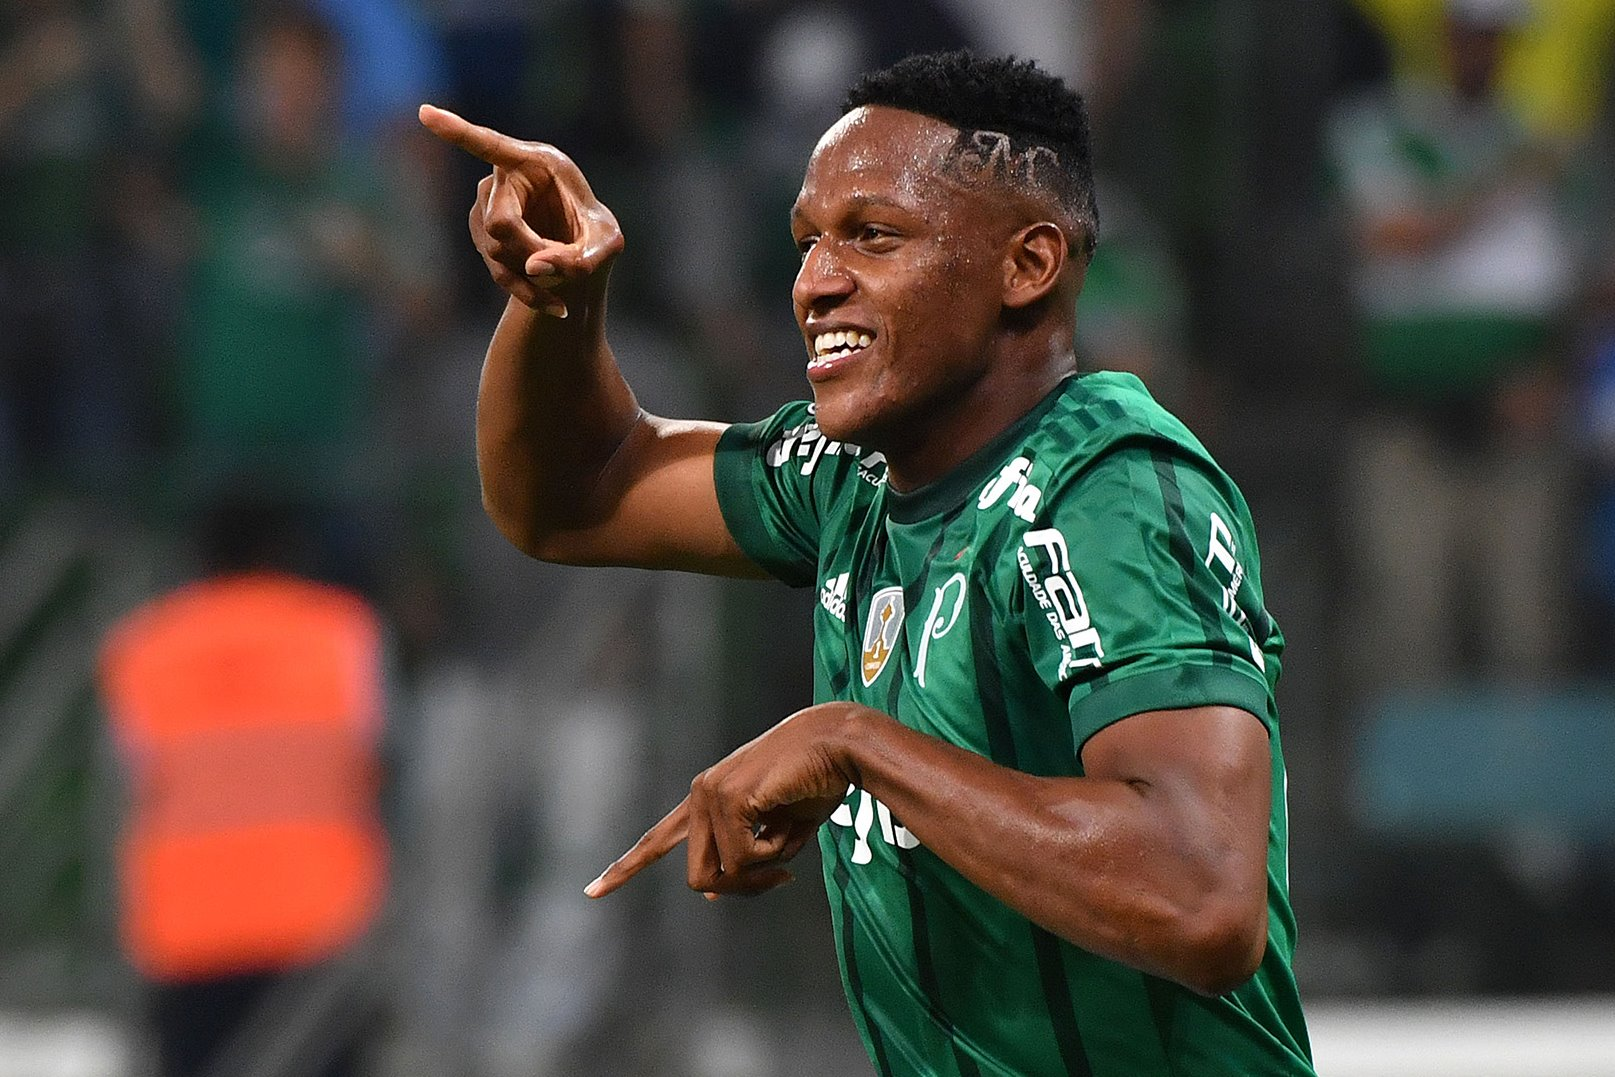 Mina of Brazil's Palmeiras celebrates his goal against Argentina's Atletico Tucuman during their 2017 Copa Libertadores football match held at Allianz Parque stadium, in Sao Paulo, Brazil on May 24, 2017. / AFP PHOTO / NELSON ALMEIDA (Photo credit should read NELSON ALMEIDA/AFP/Getty Images)